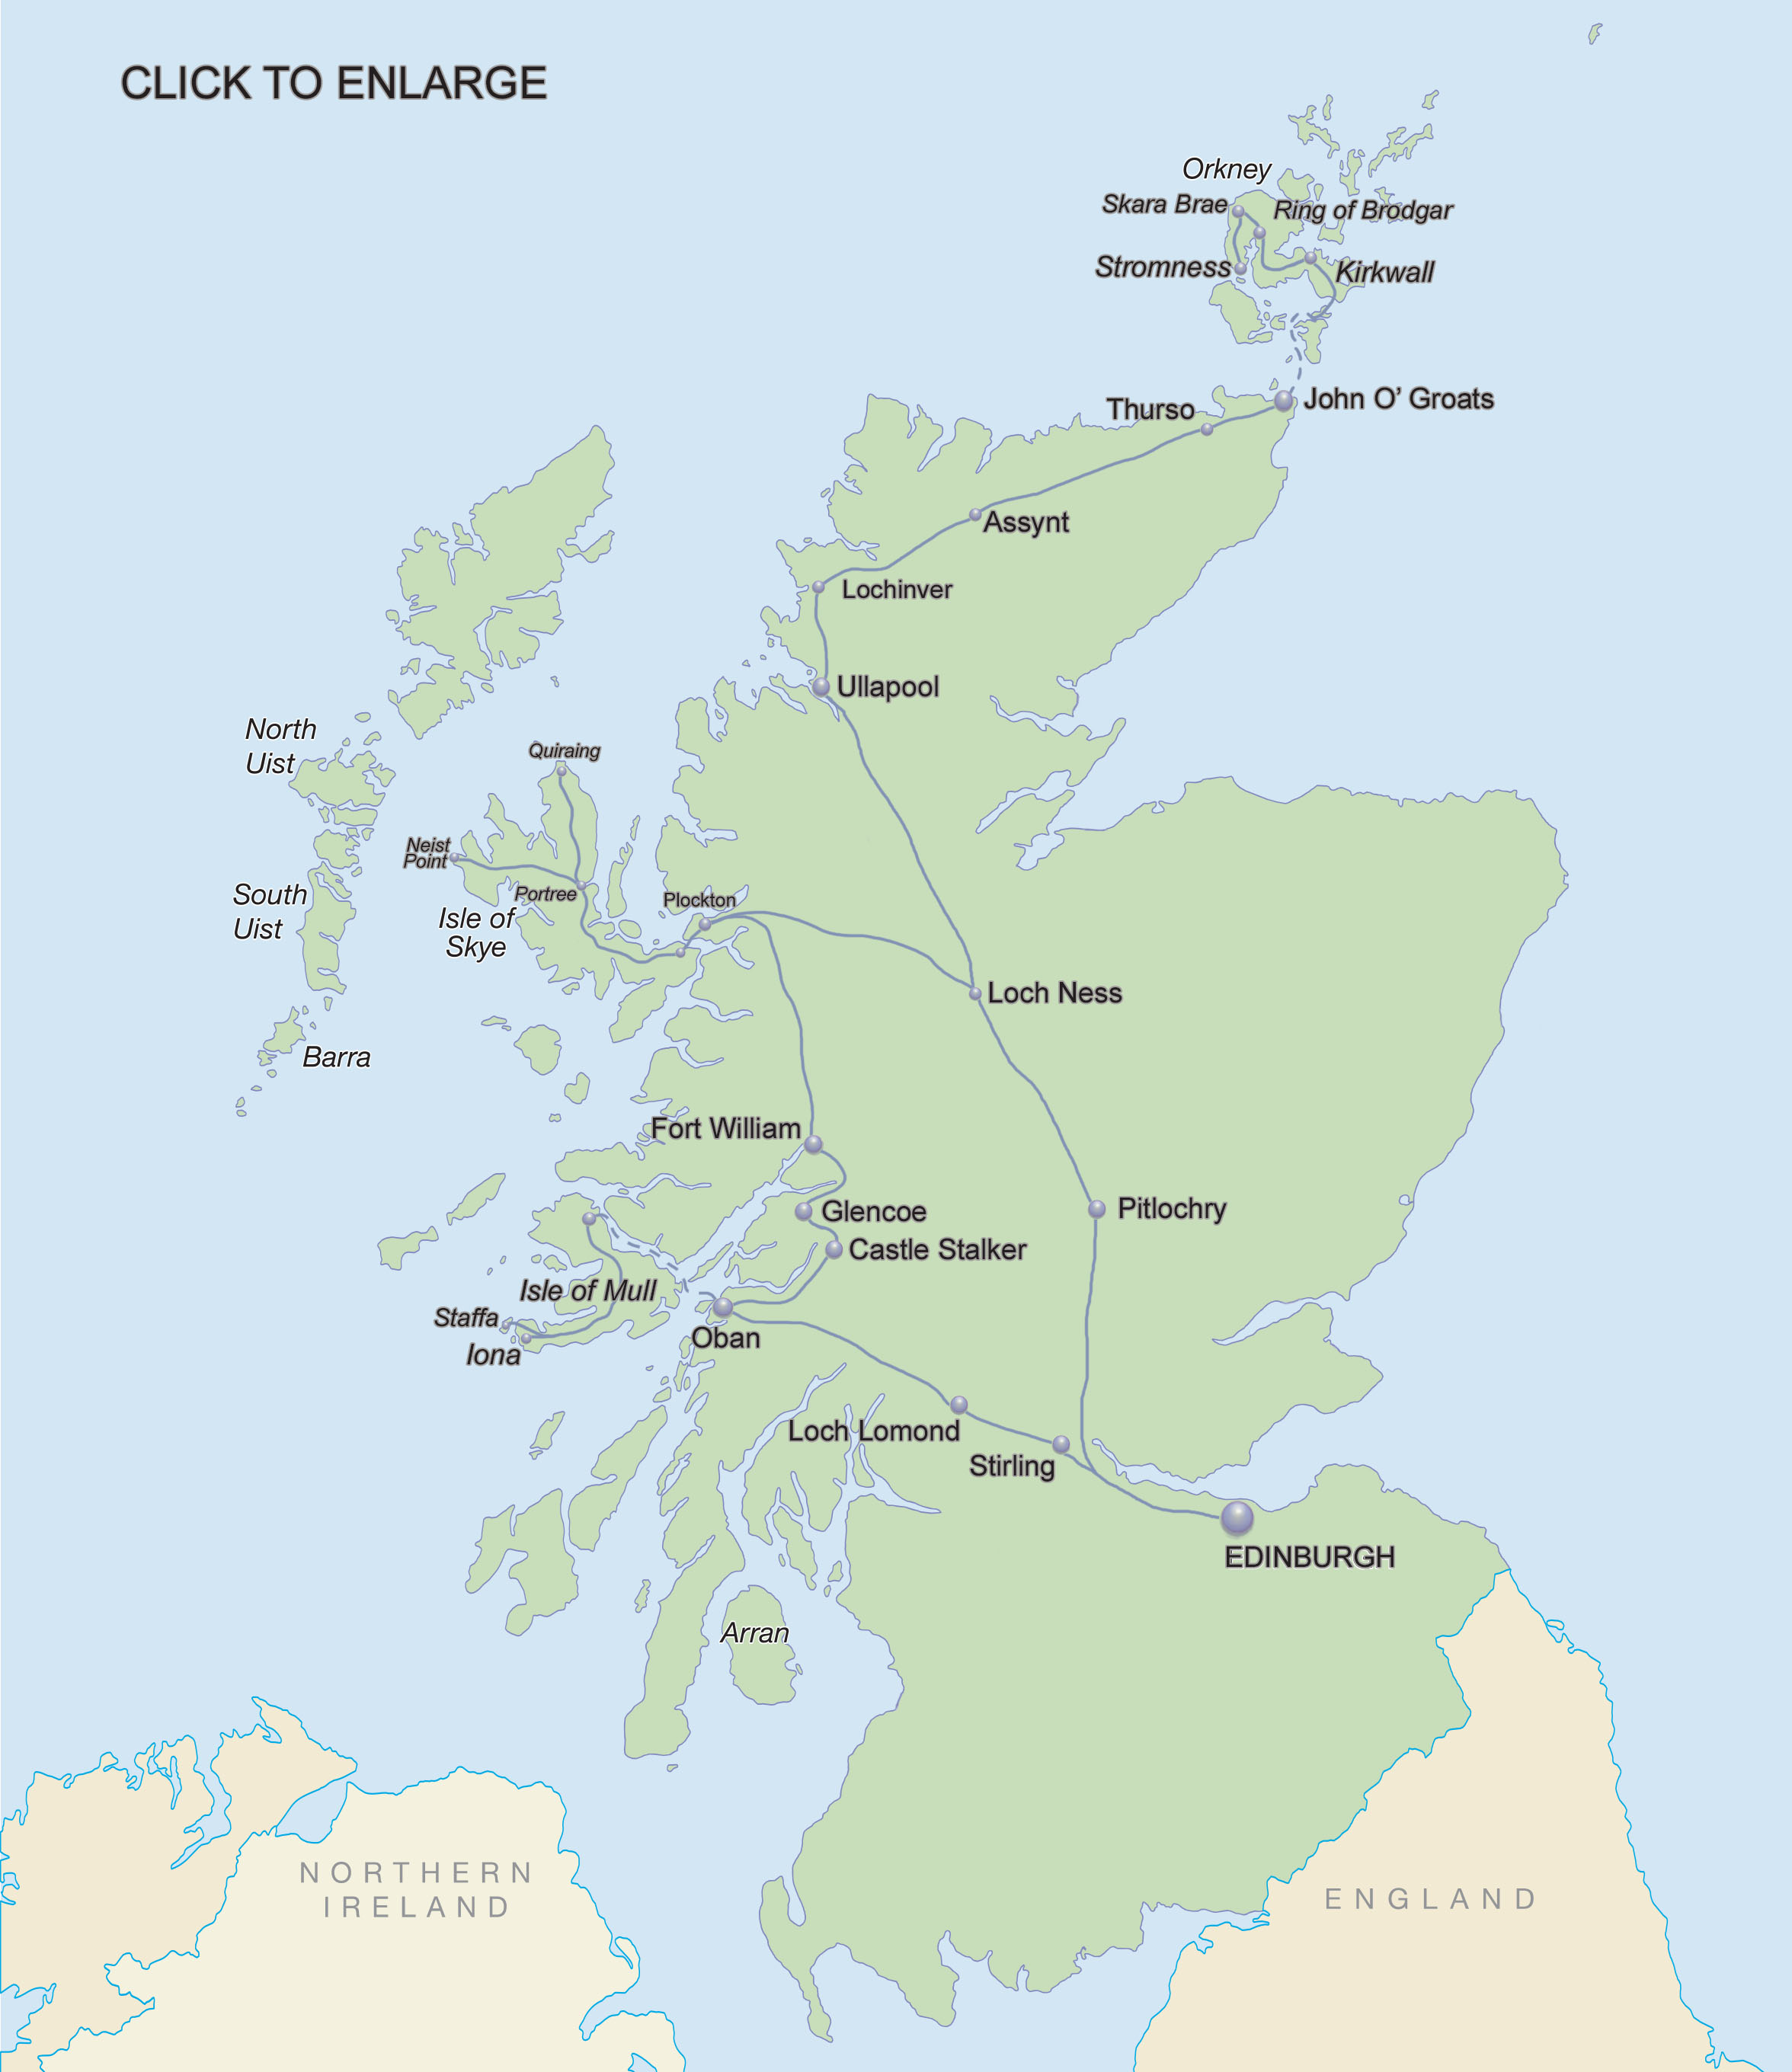 Scottish Islands Highlands  featuring Iona Skye Mull and Orkney